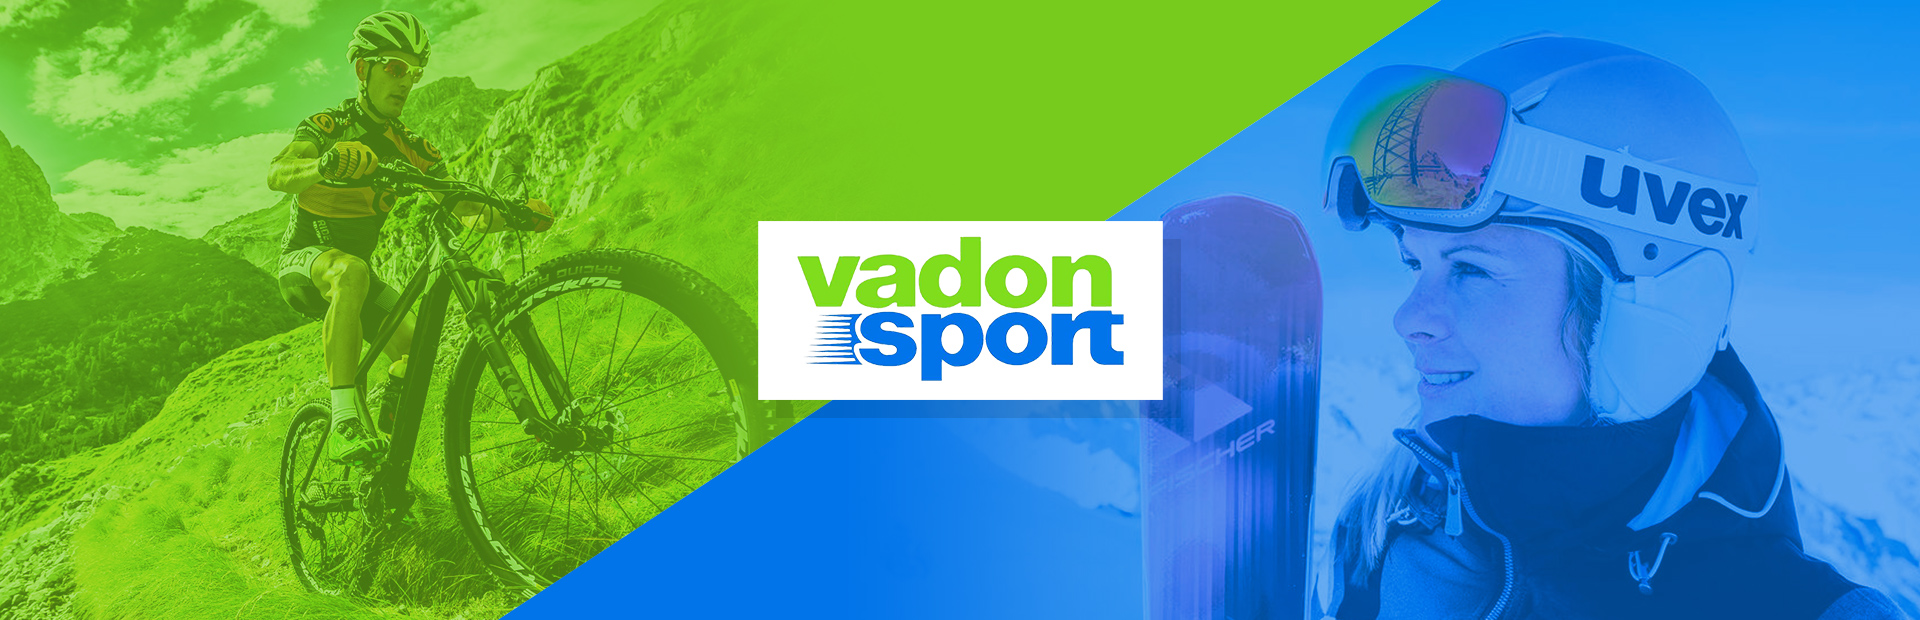 Webshop marketing - Vadon Sport